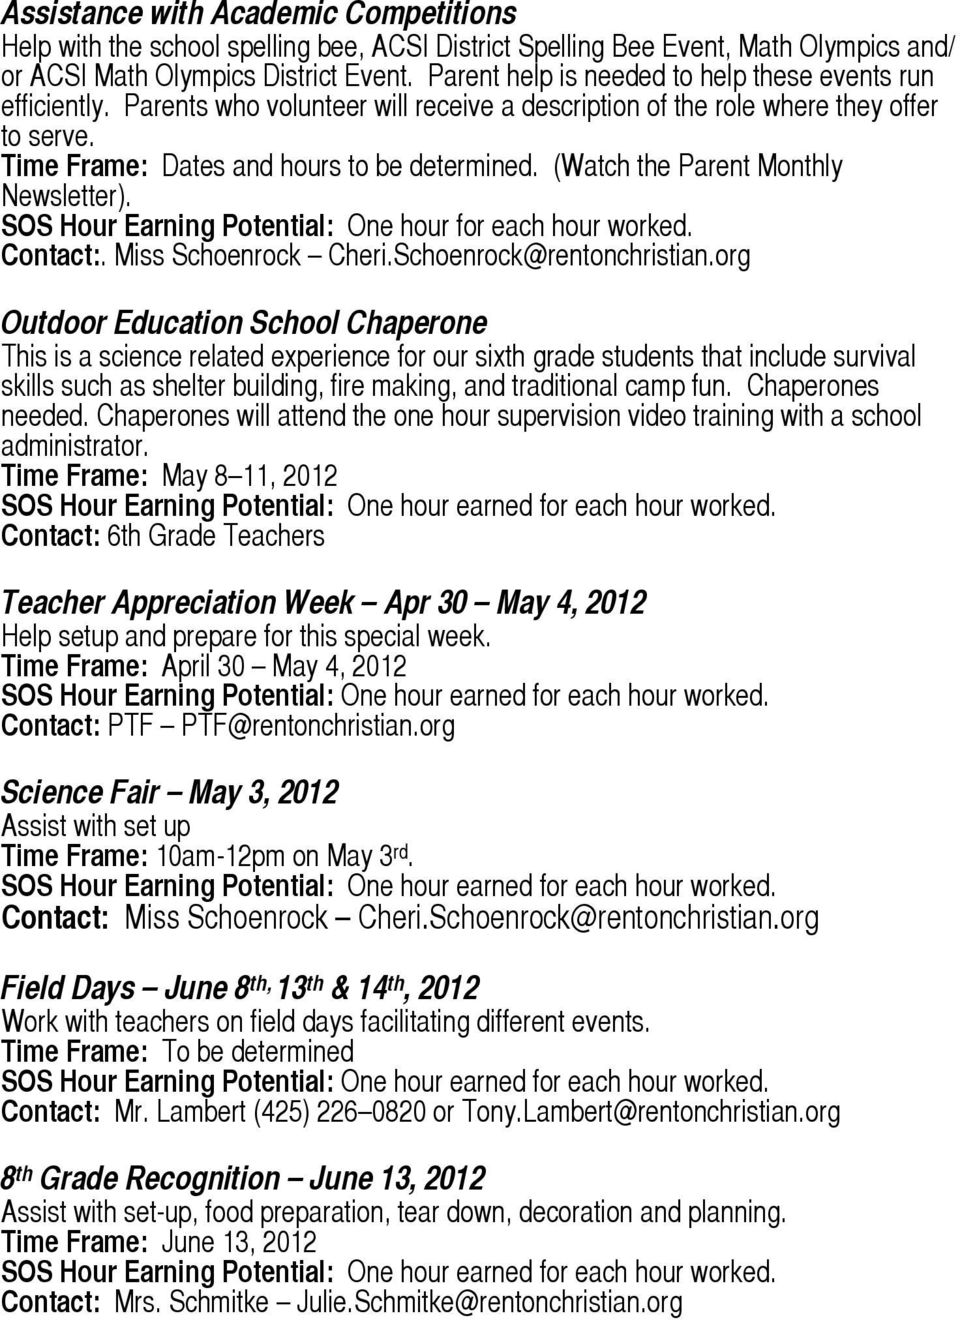 (Watch the Parent Monthly Newsletter). SOS Hour Earning Potential: One hour for each hour worked. Contact:. Miss Schoenrock Cheri.Schoenrock@rentonchristian.